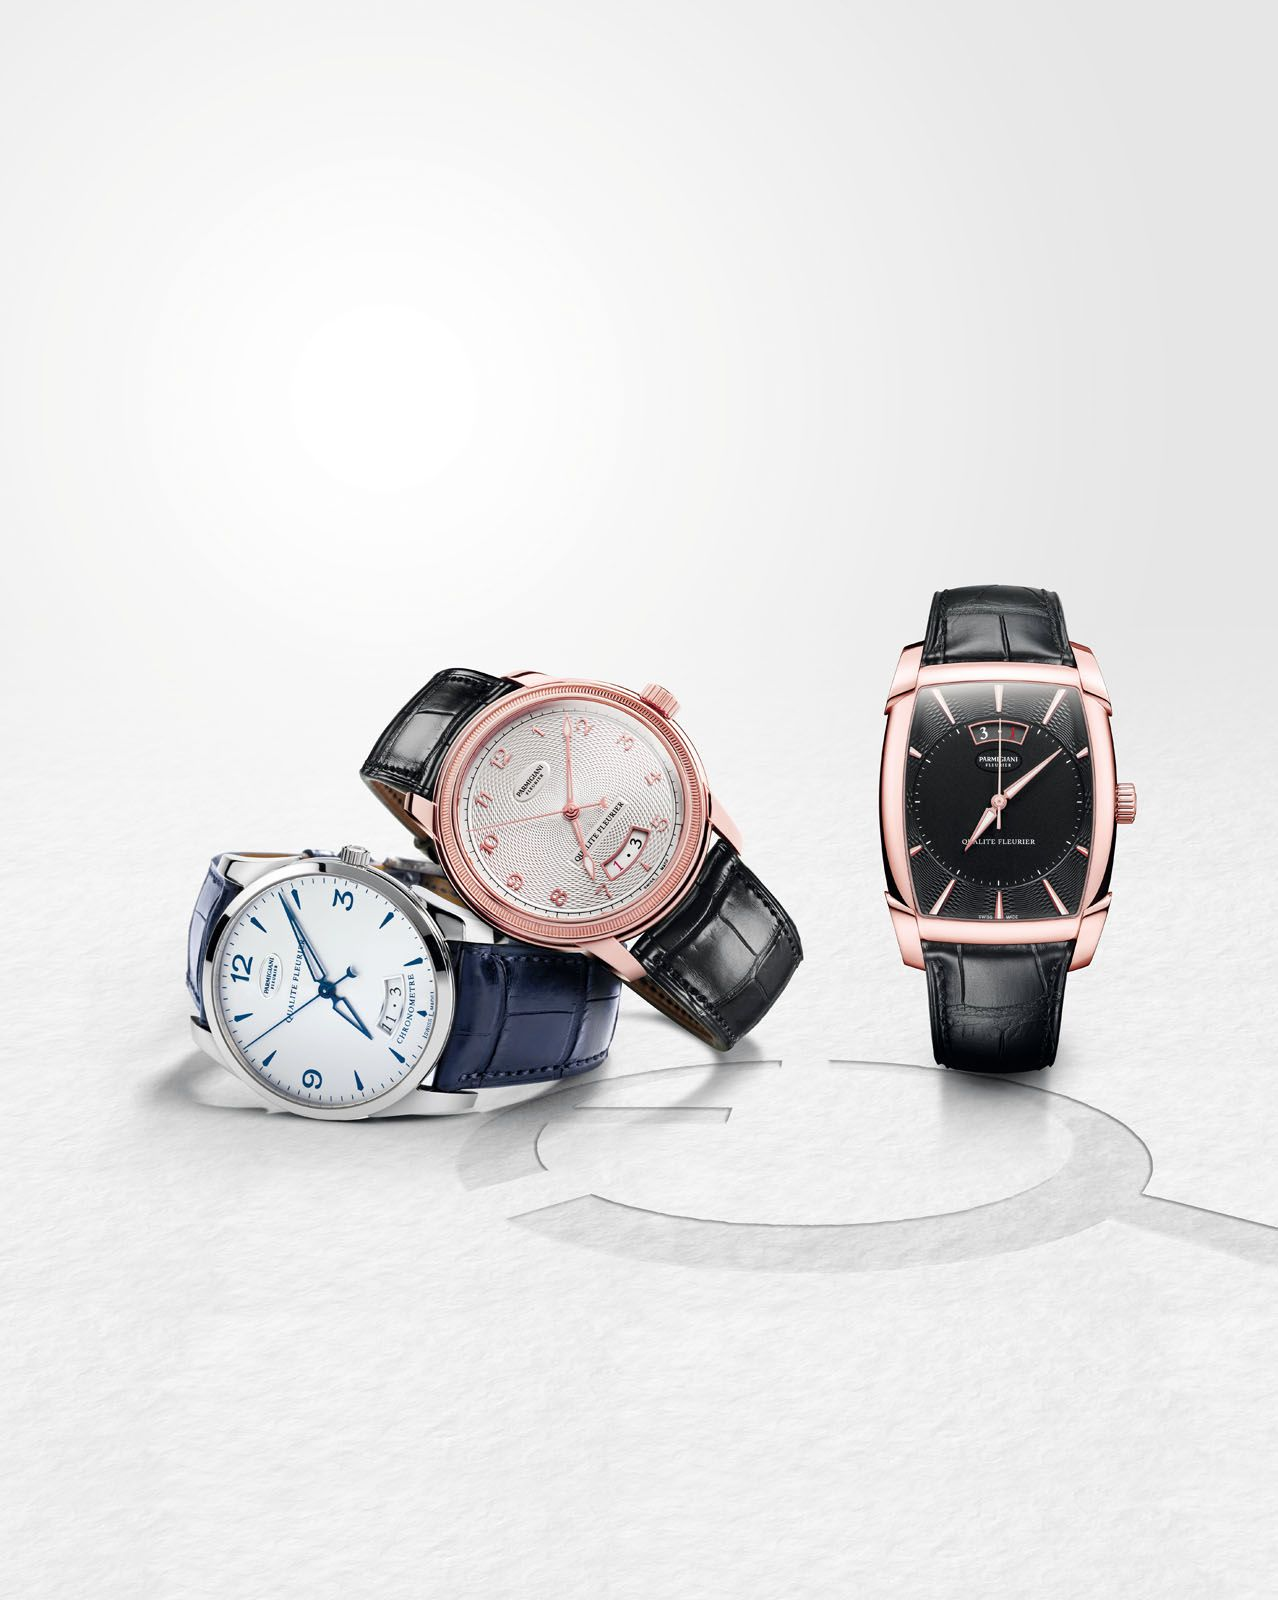 Quality Work Parmigiani Fleurier's own Qualité Fleurier‑certified watches can be found in its (from left) Tonda, Toric and Kalpa lines